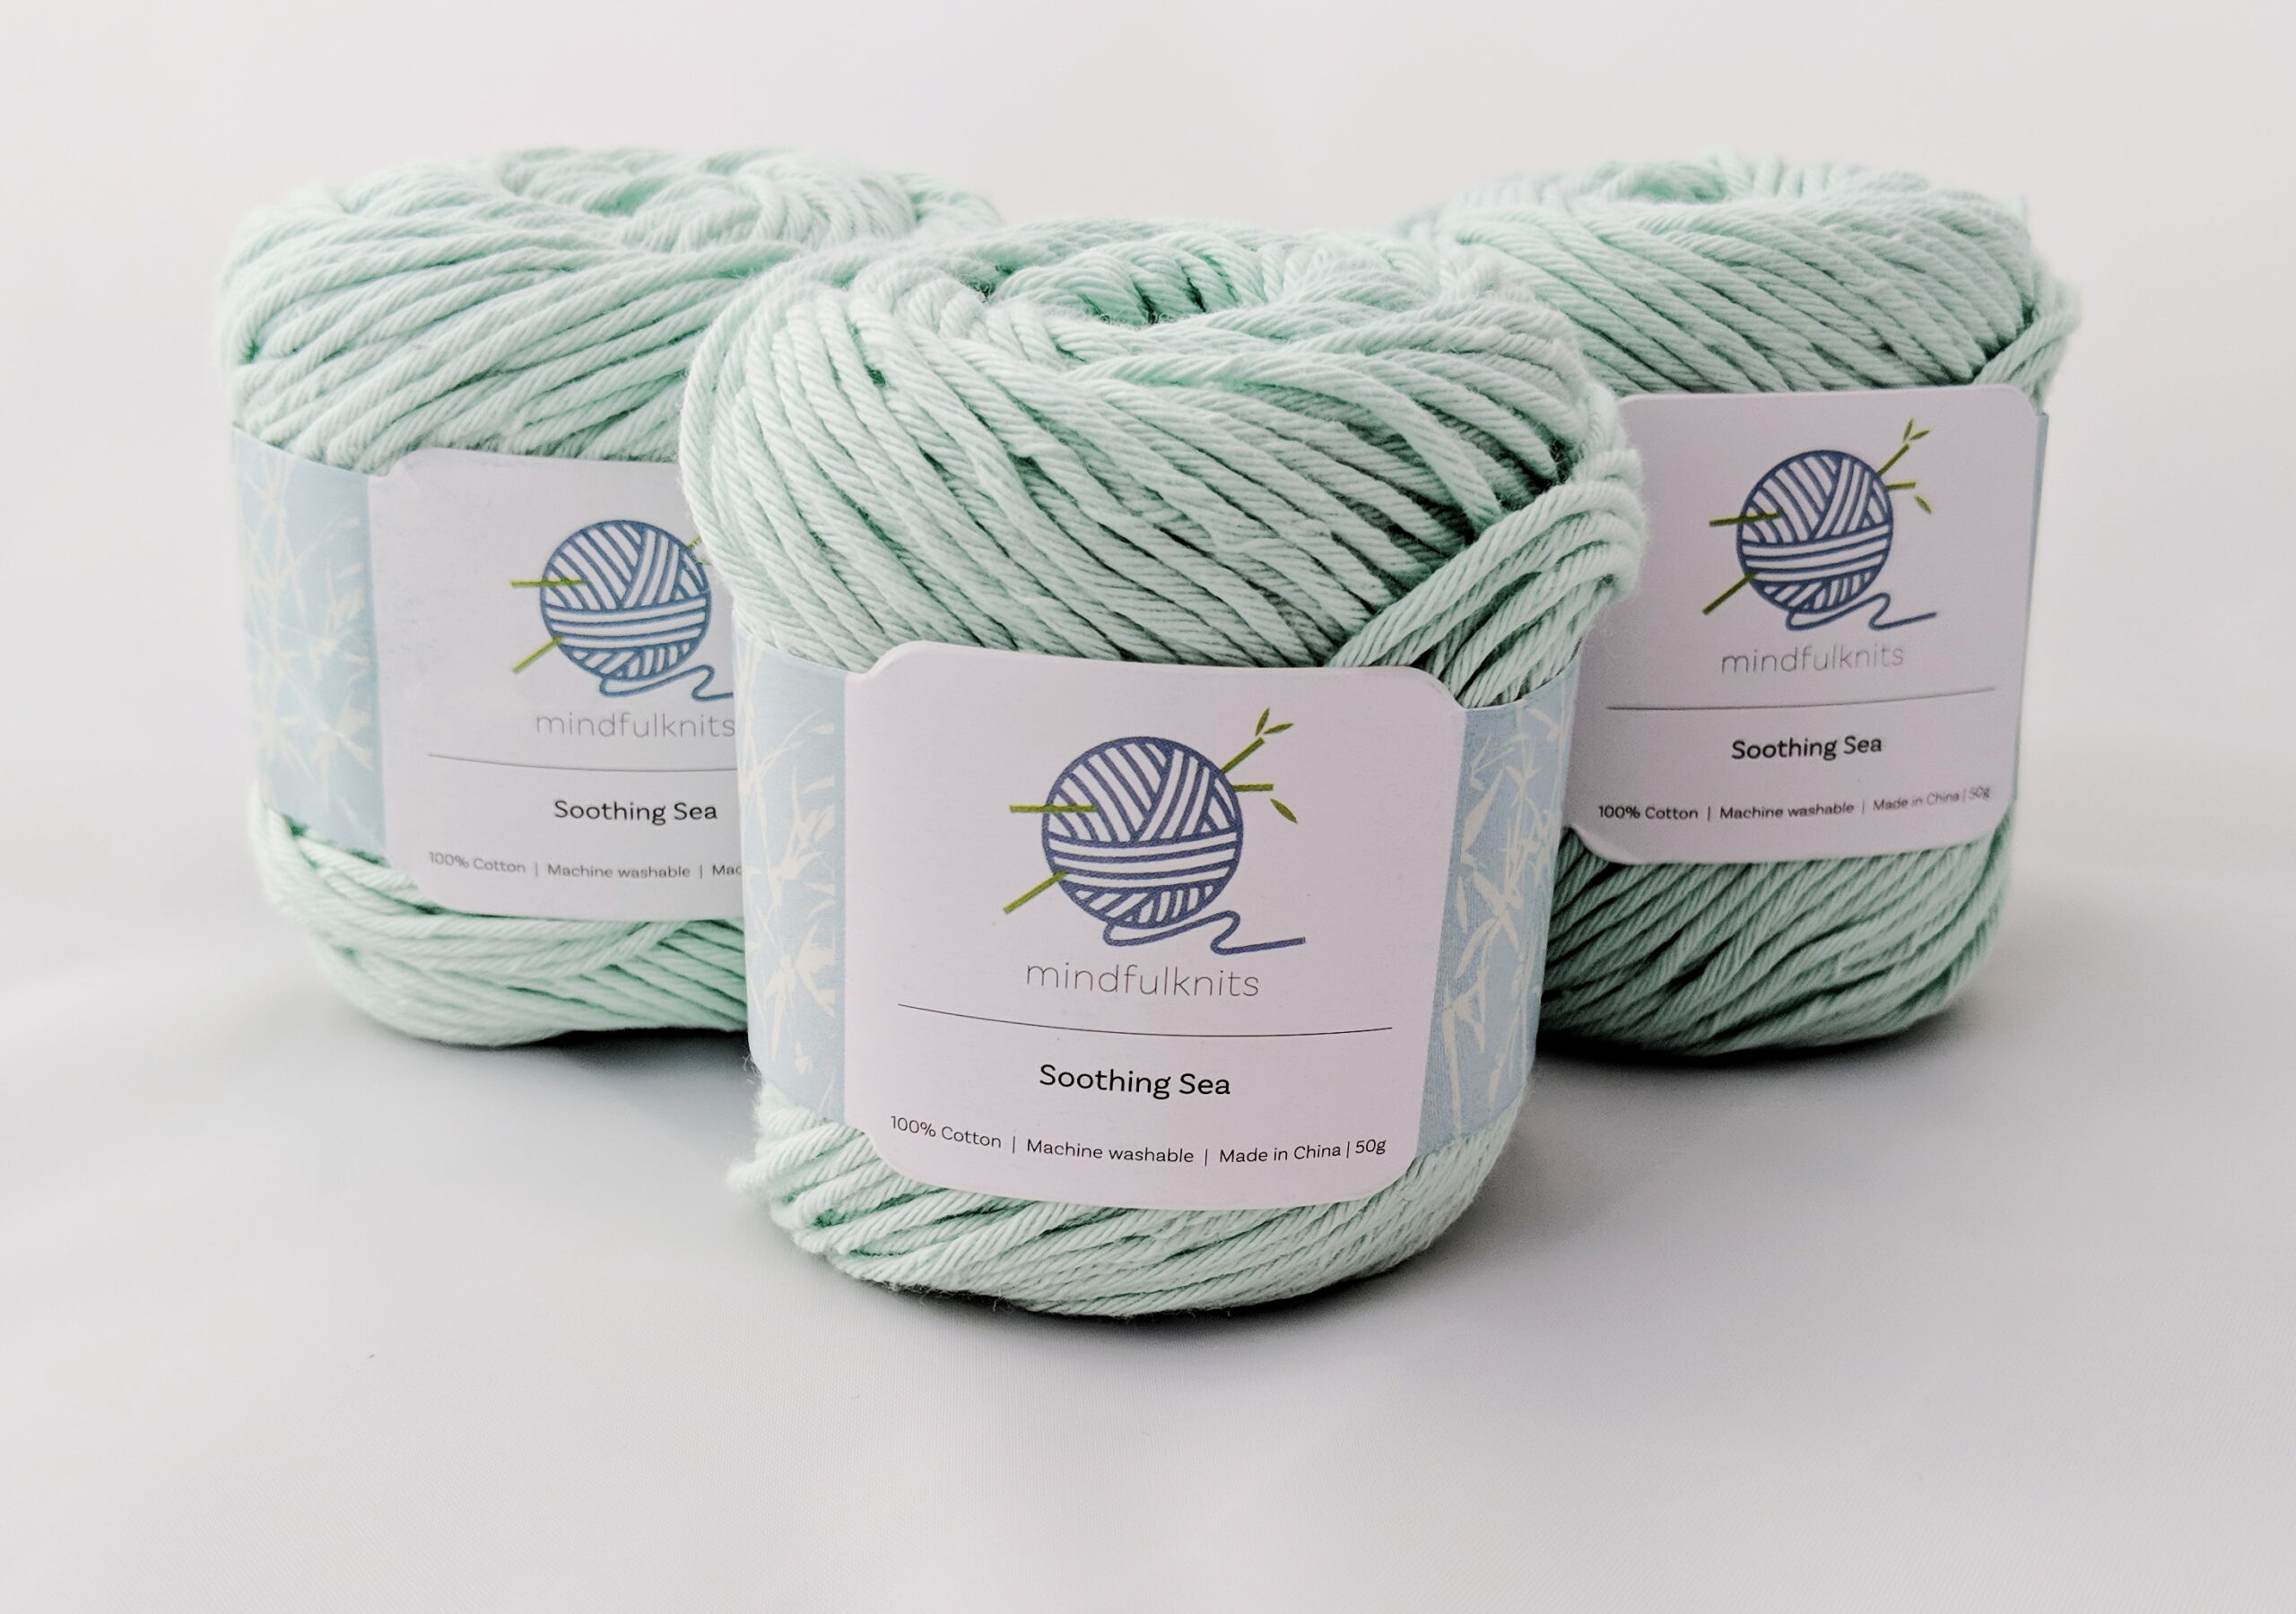 Knitting kits for adults and kids